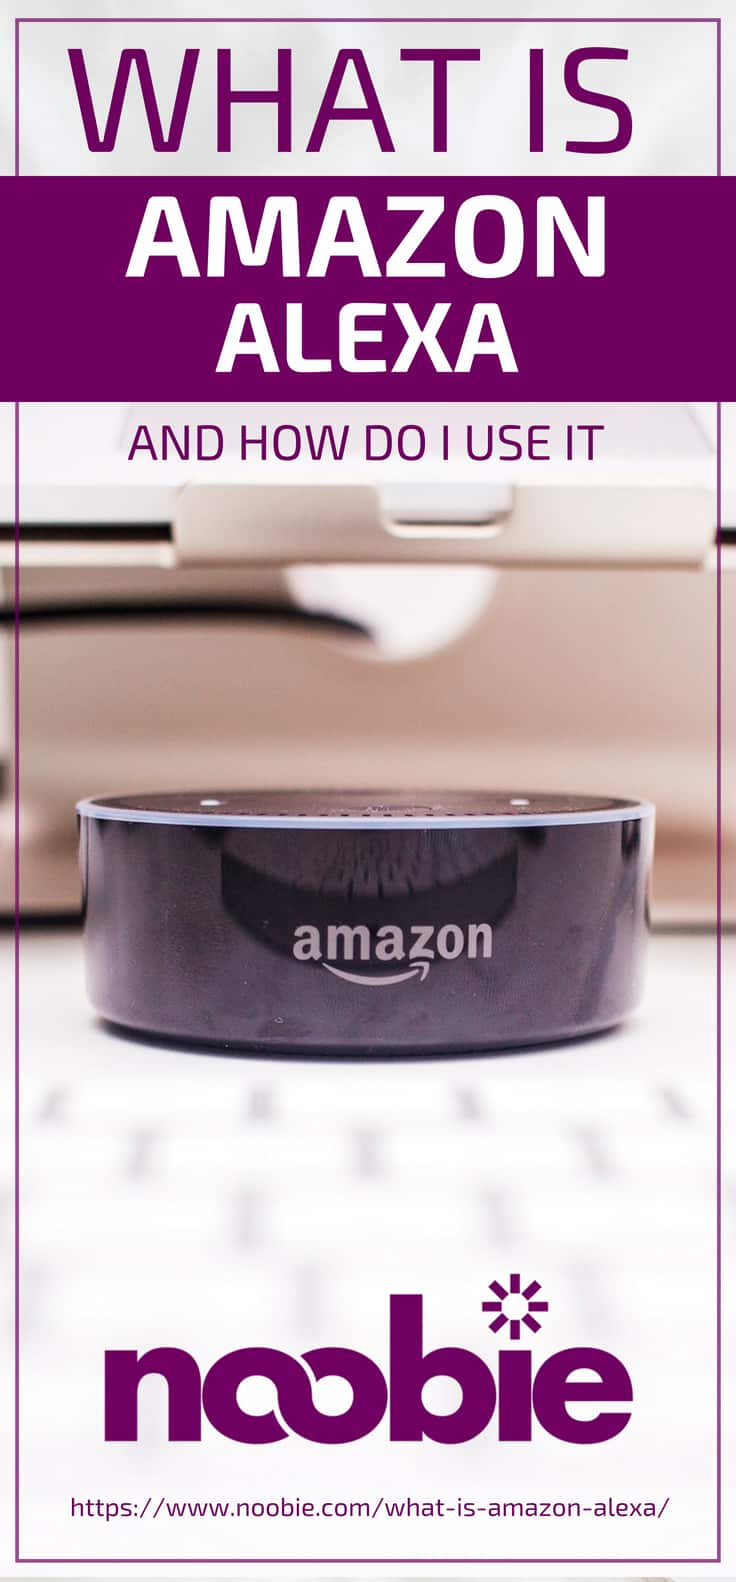 What Is Amazon Alexa And How Do I Use It?